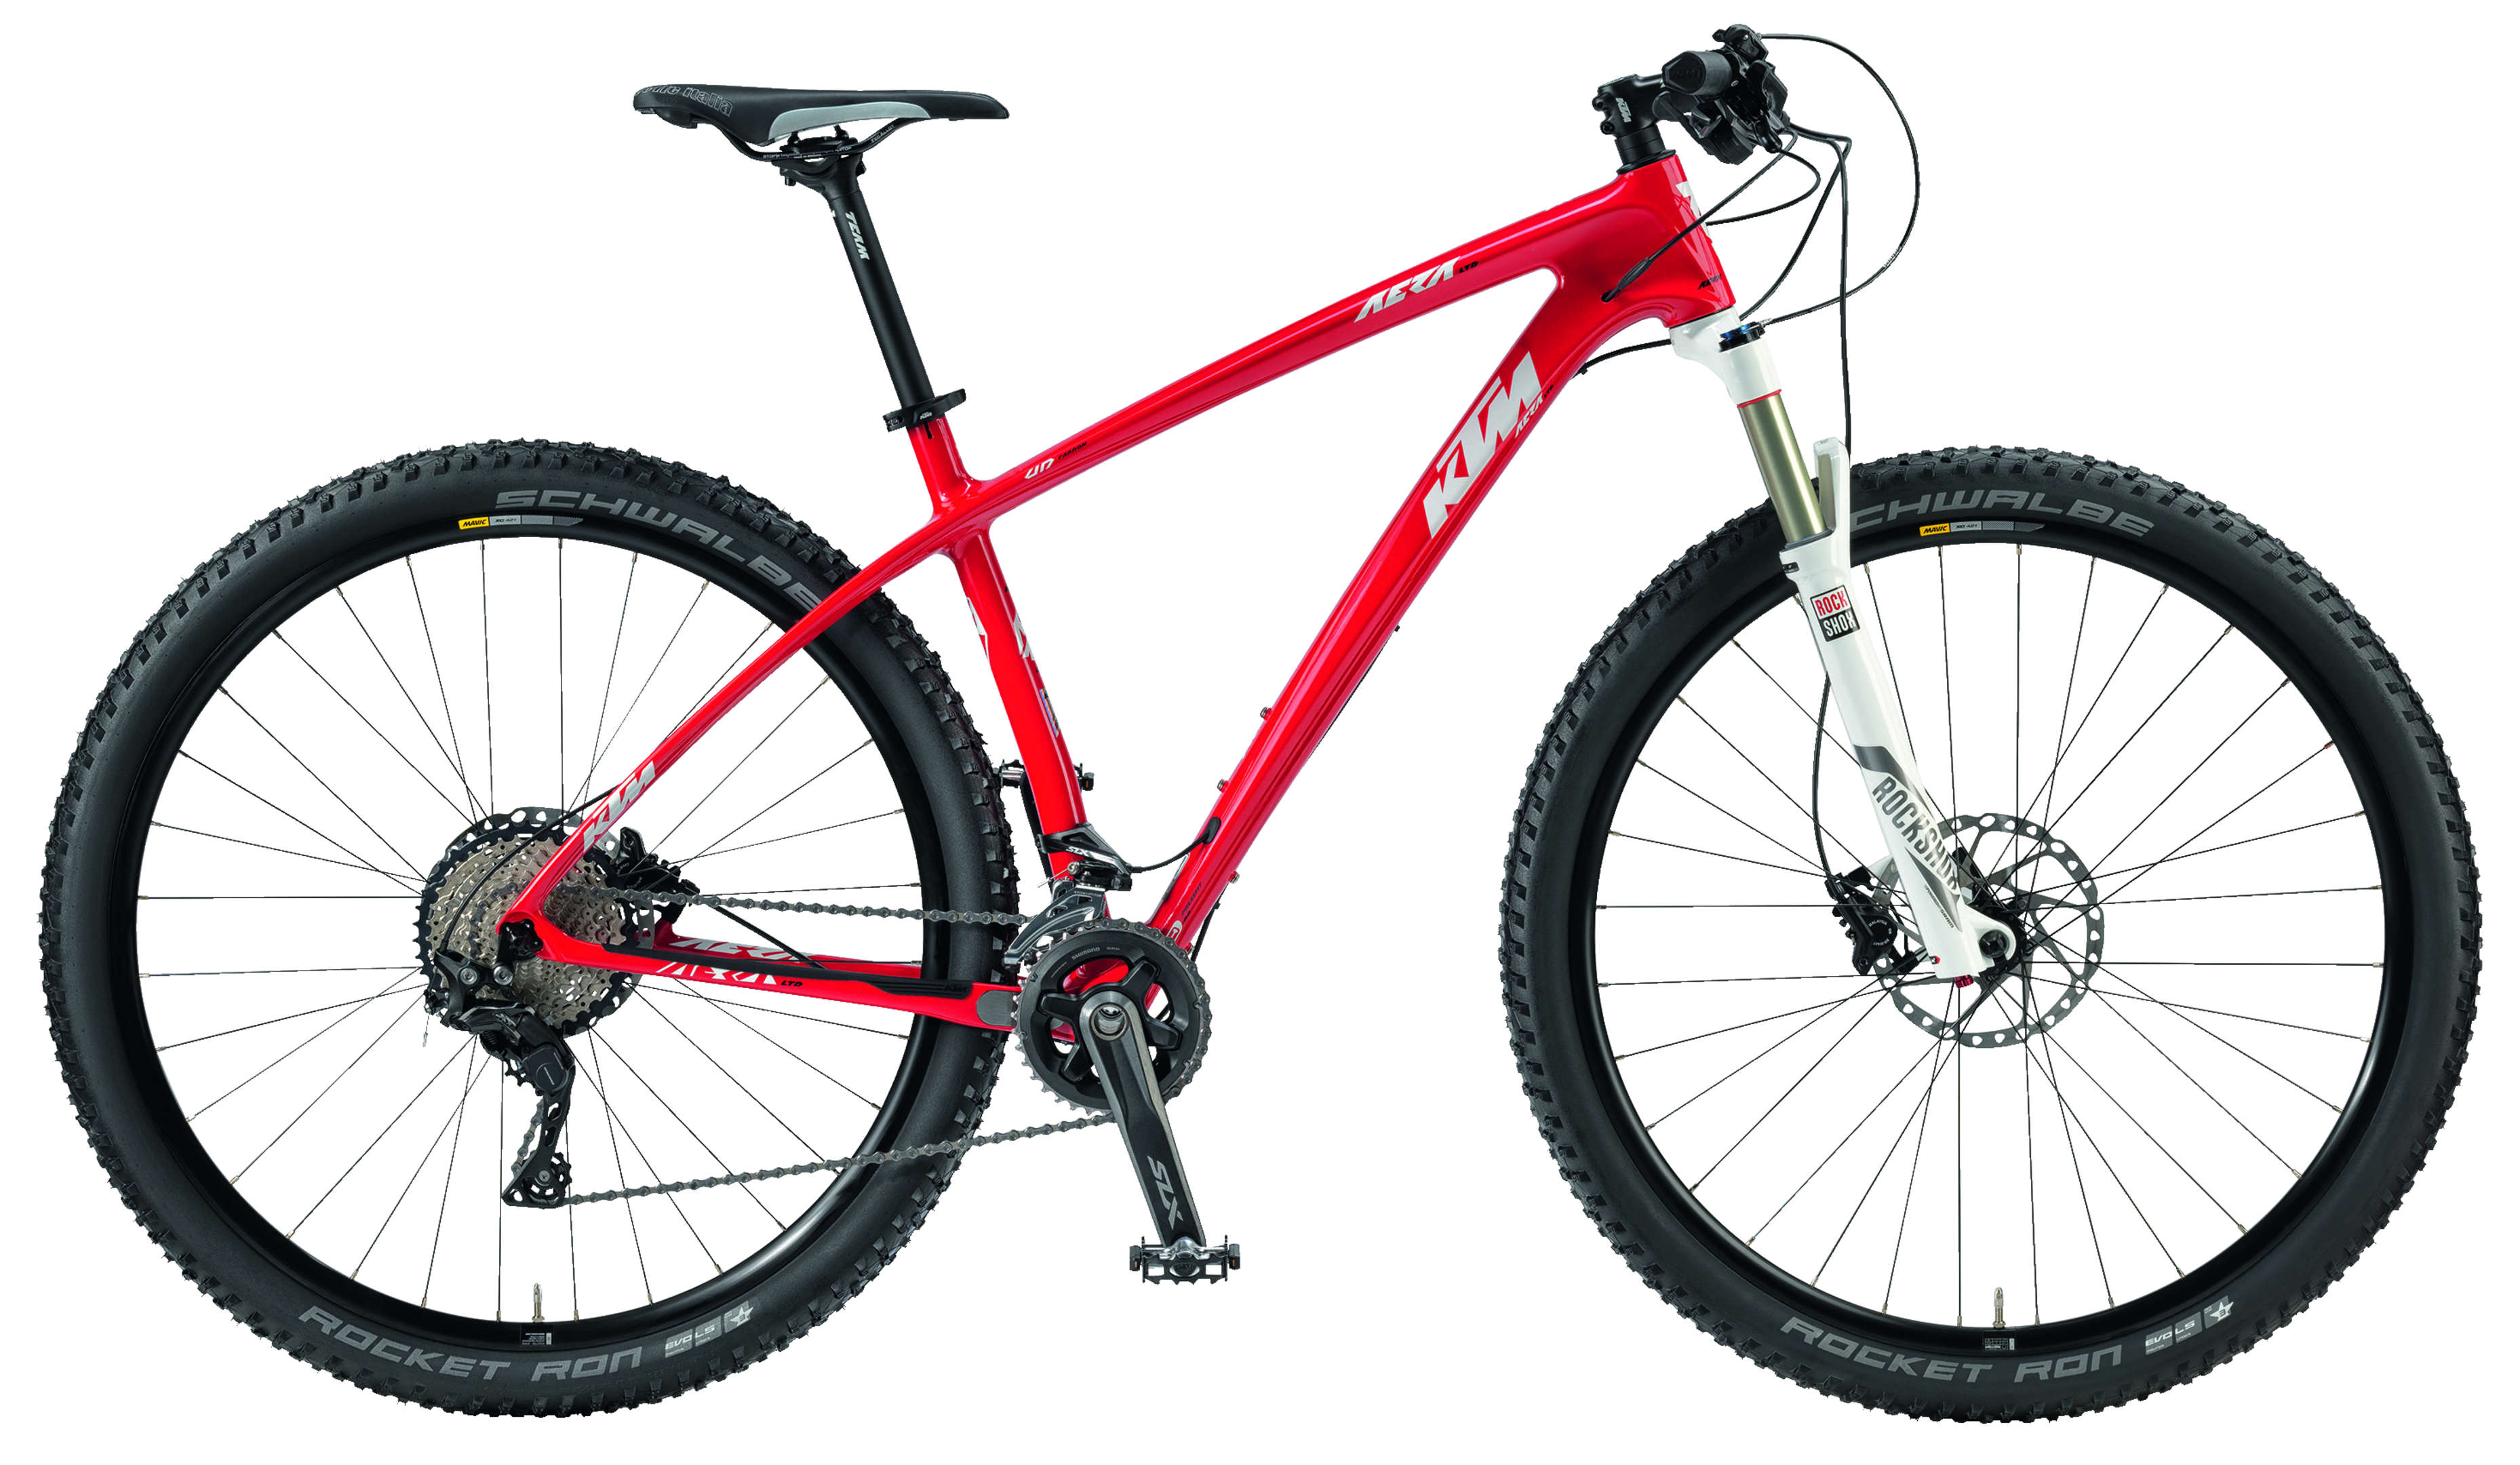 ktm mtb aera 29 ltd eurorad bikeleasingeurorad bikeleasing. Black Bedroom Furniture Sets. Home Design Ideas